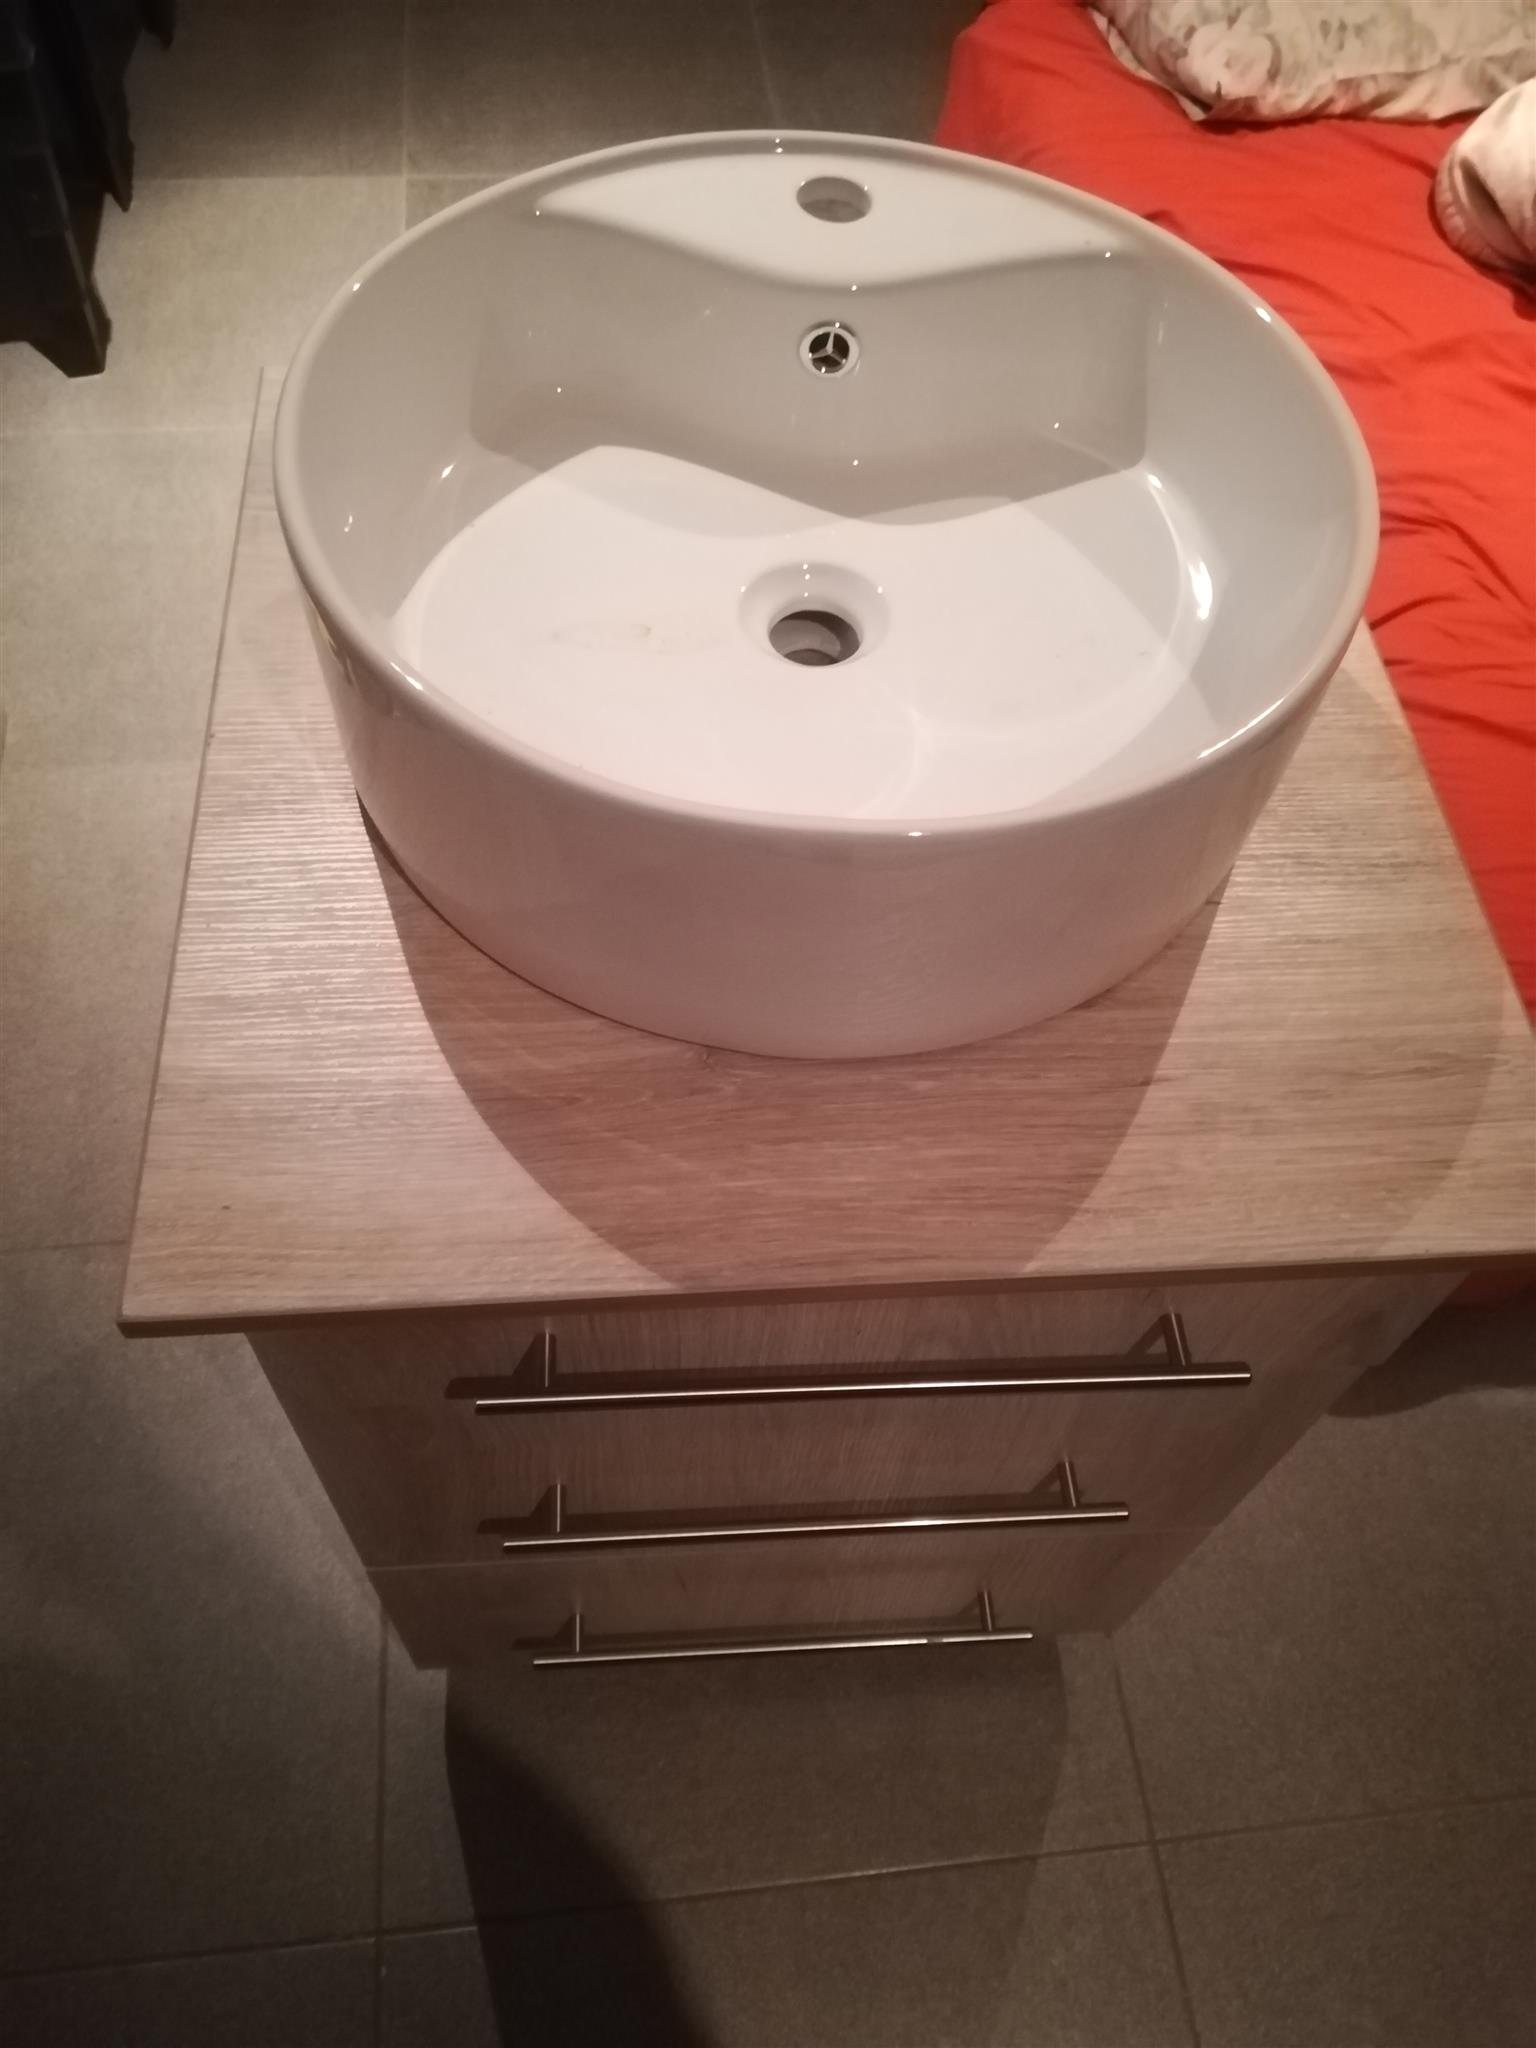 Bedsite Table and Basin combo